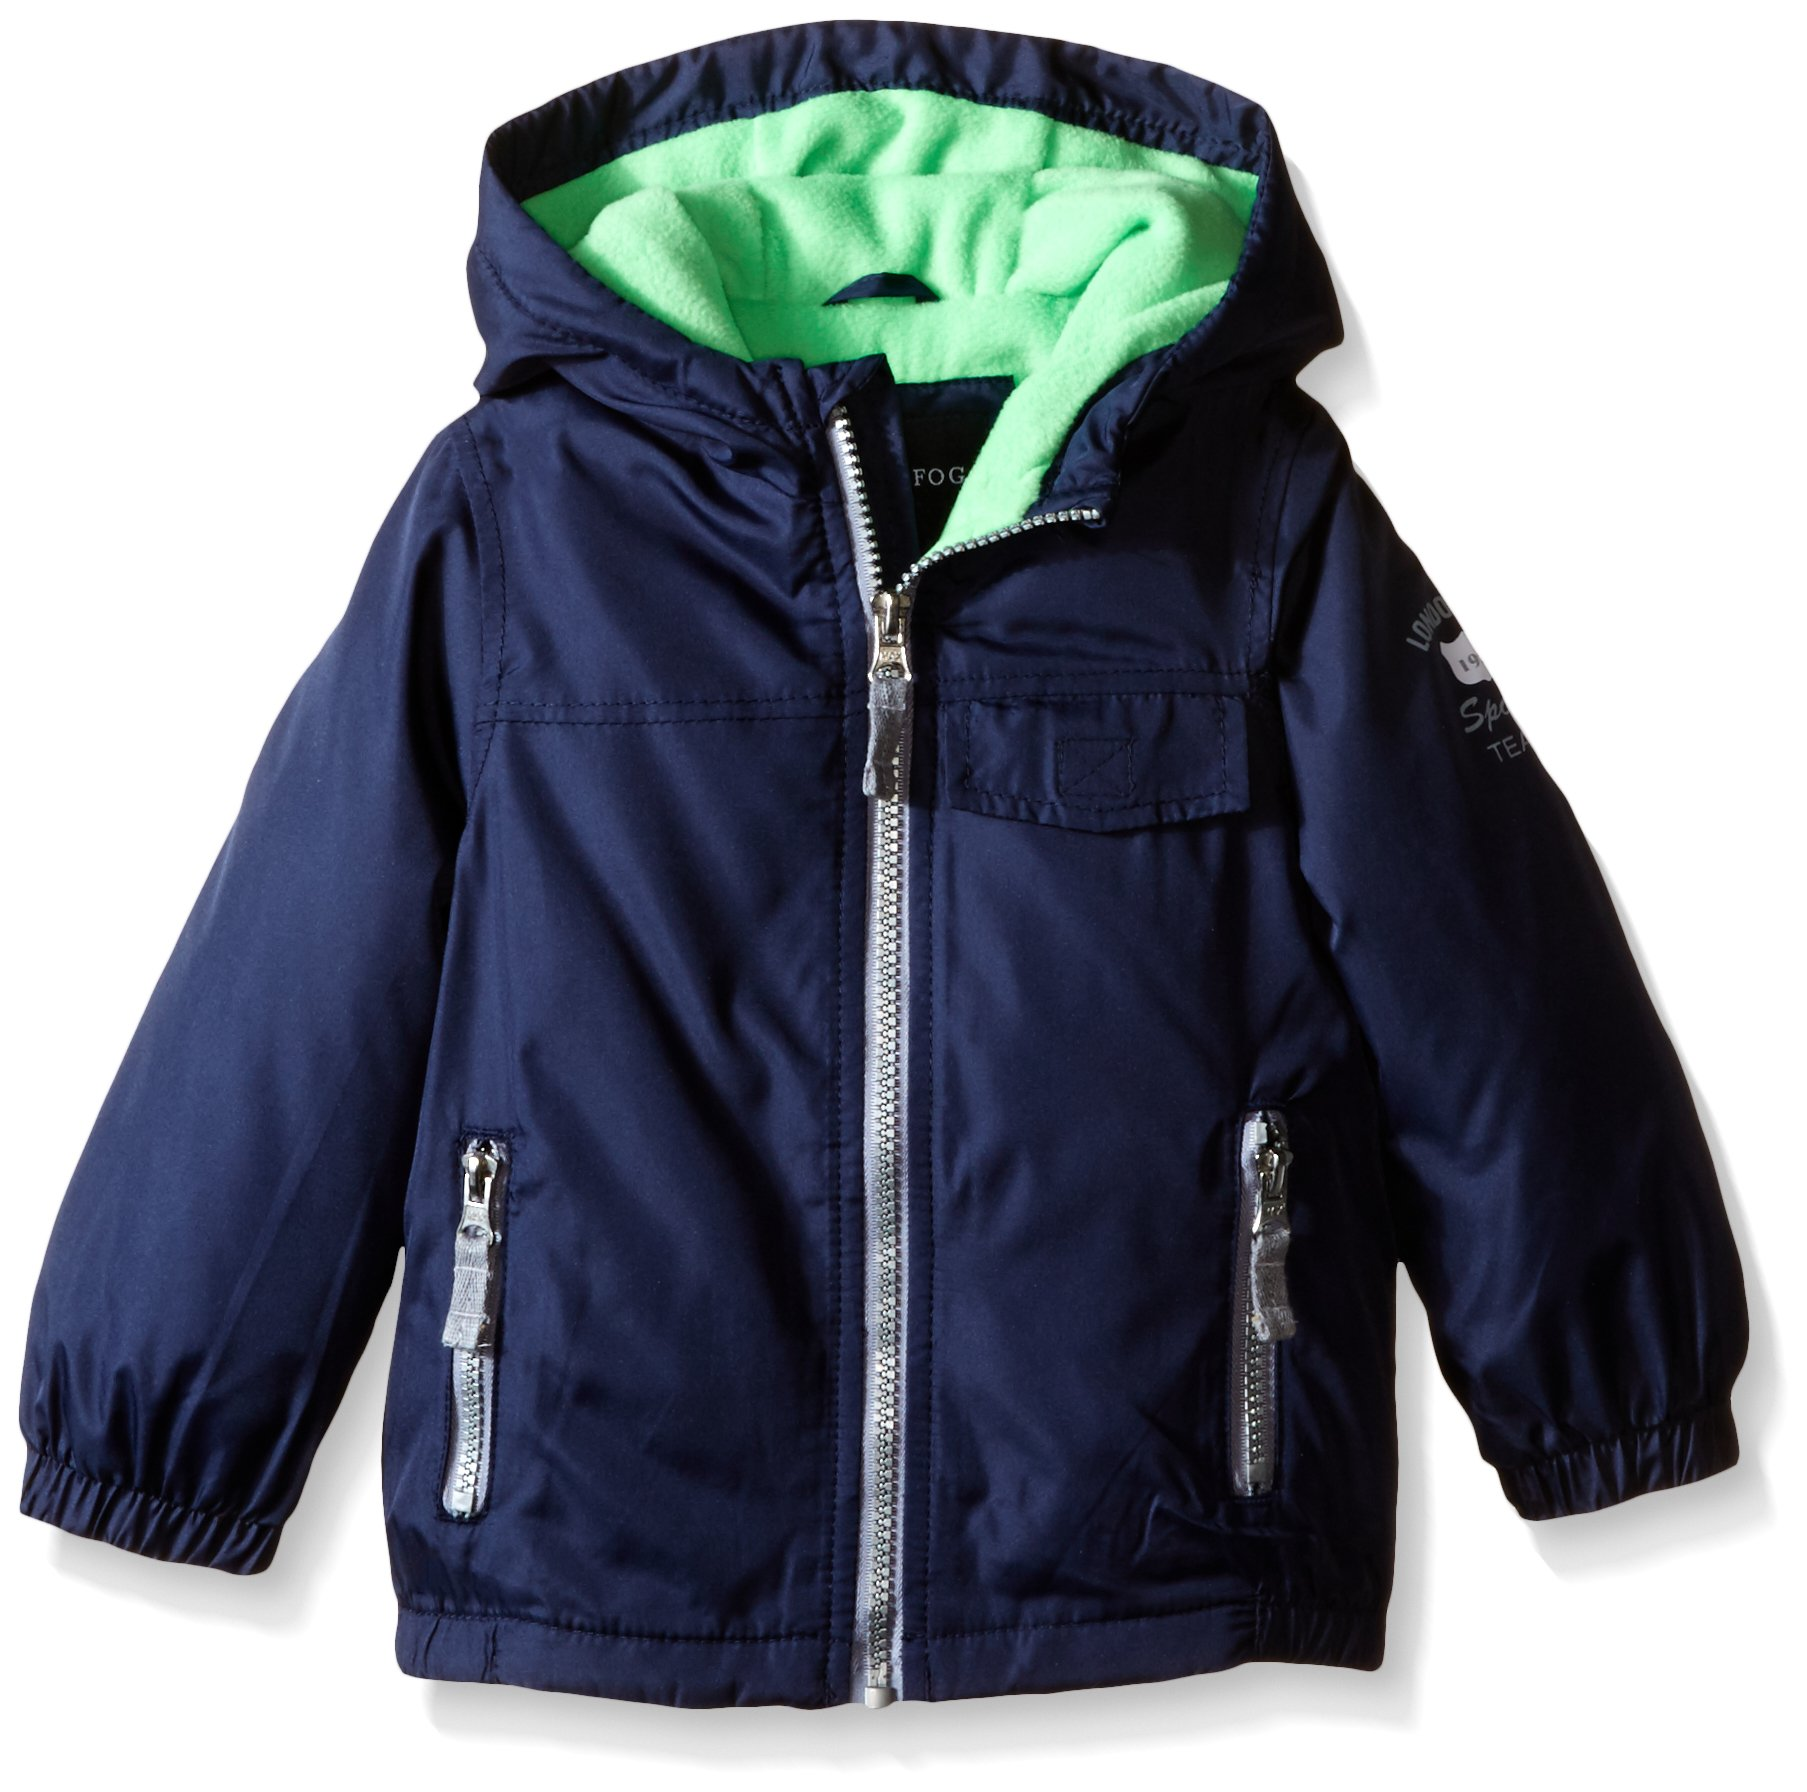 London Fog Little Boys Poly Fleece Lined Windbreaker, Navy/Green, 5/6 by London Fog